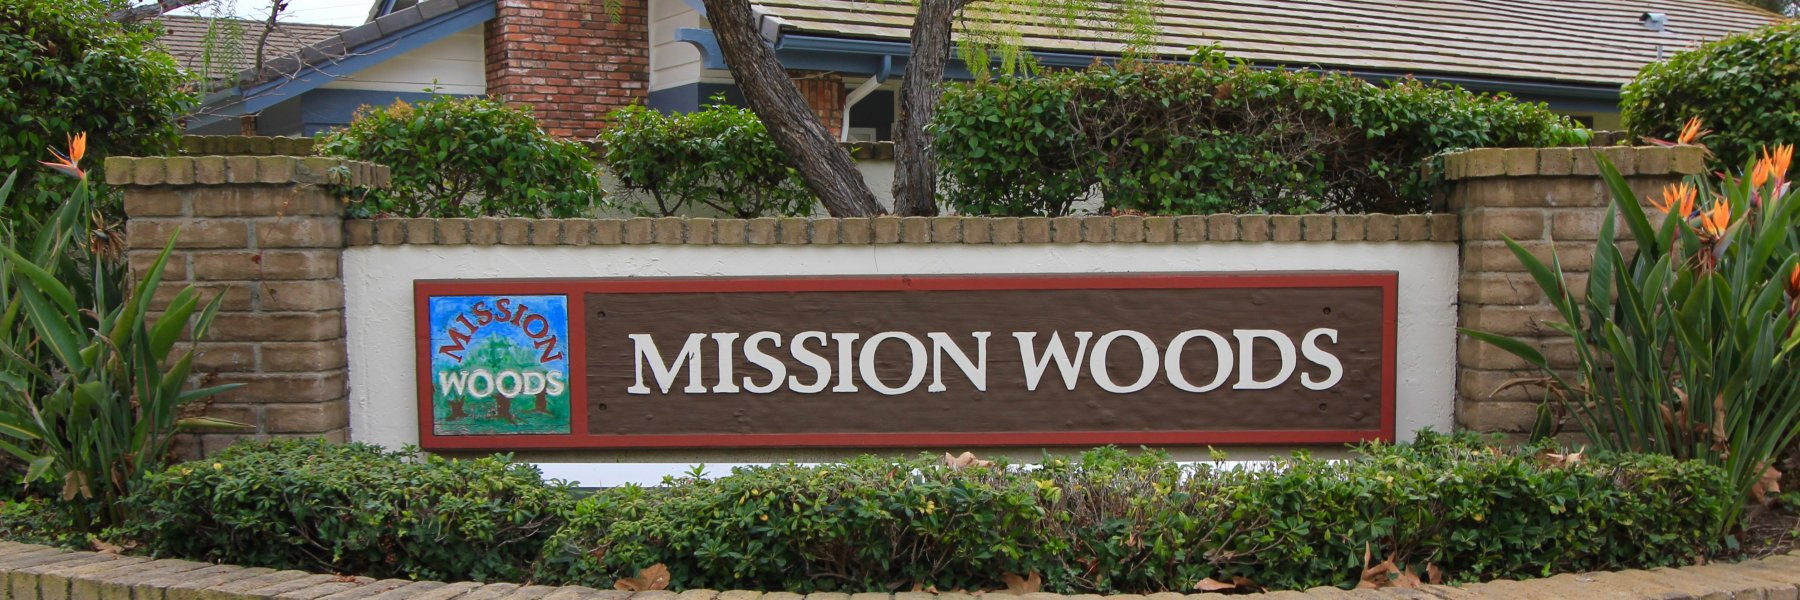 Mission Woods is a community of homes in San Juan Capistrano California